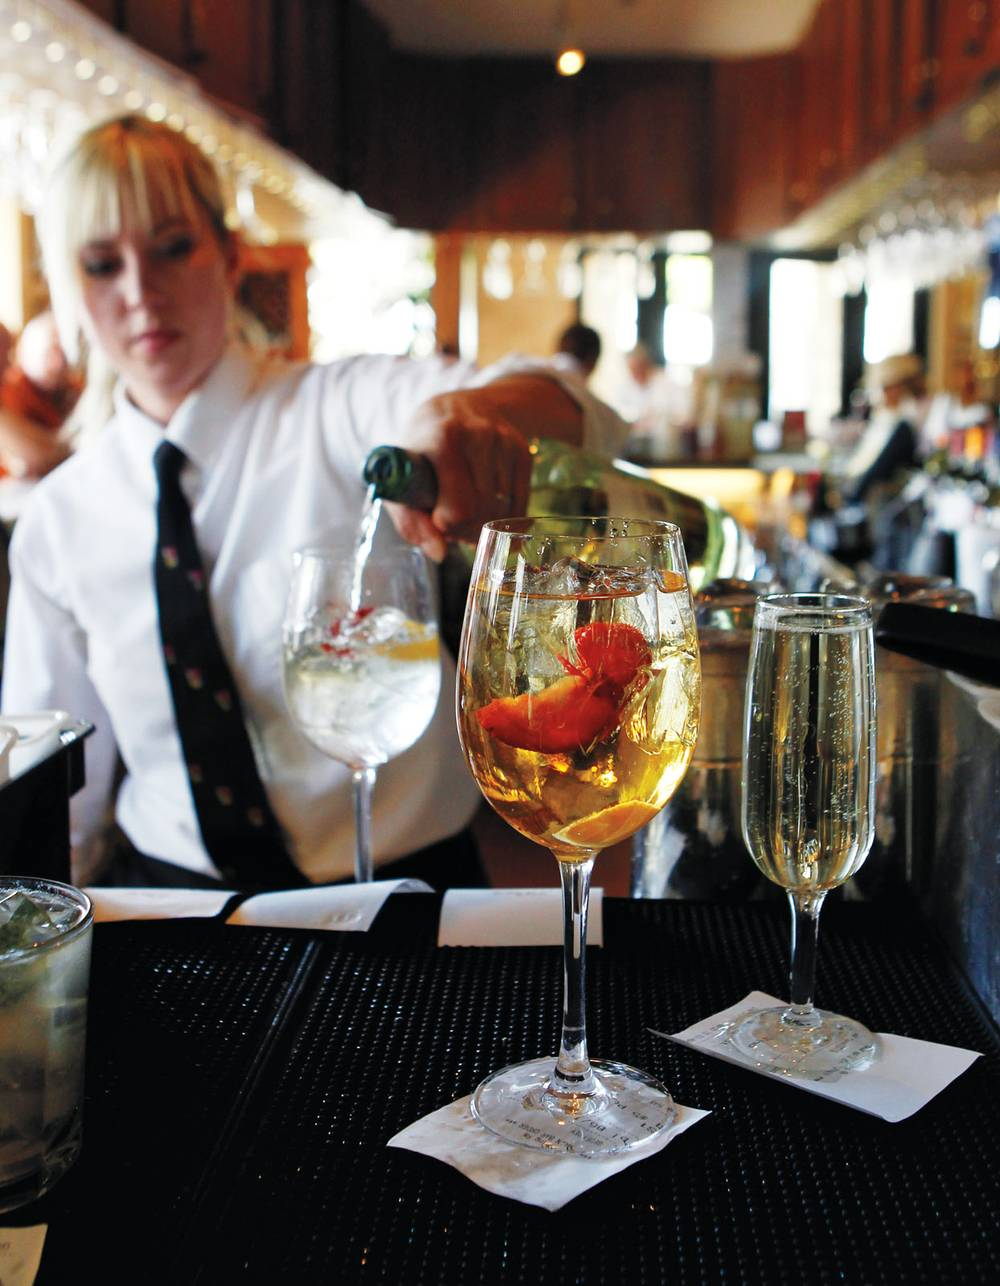 Brio Tivoli Village Happy Hour Menu Tivoli Village Is Home To An Epic Happy Hour Crawl Las Vegas Weekly